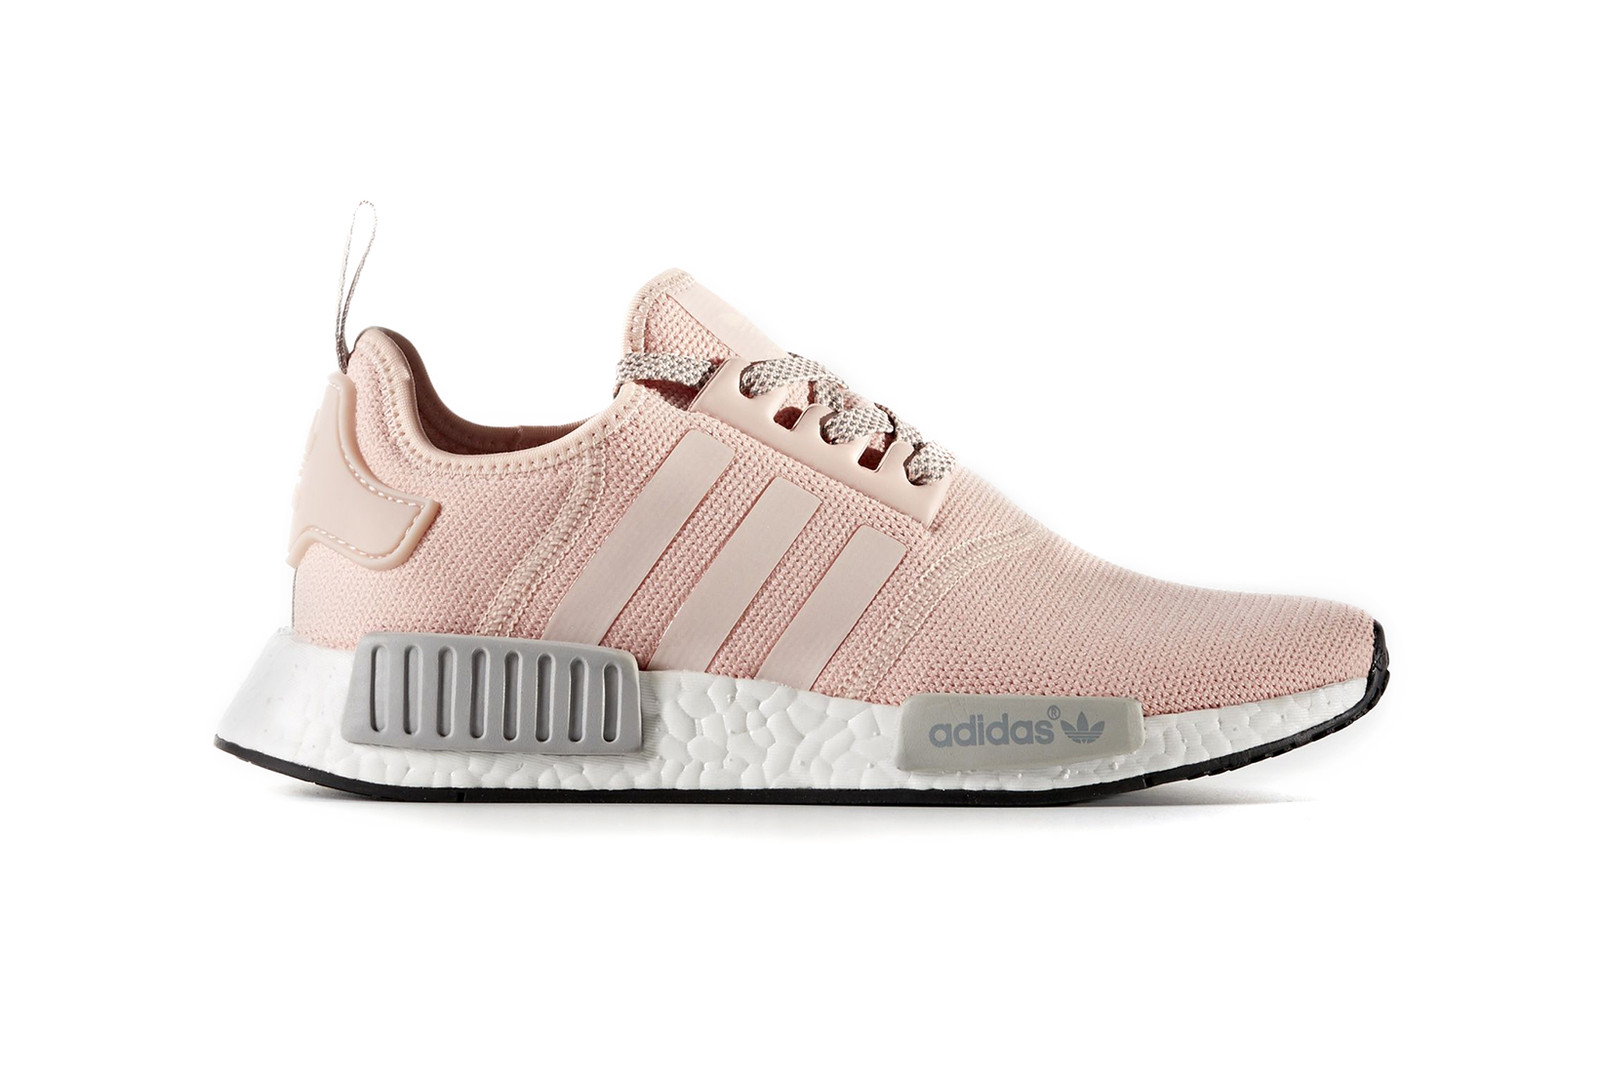 premium selection cd495 8a96b The Pink and Grey adidas NMDs Are Restocking | HYPEBAE